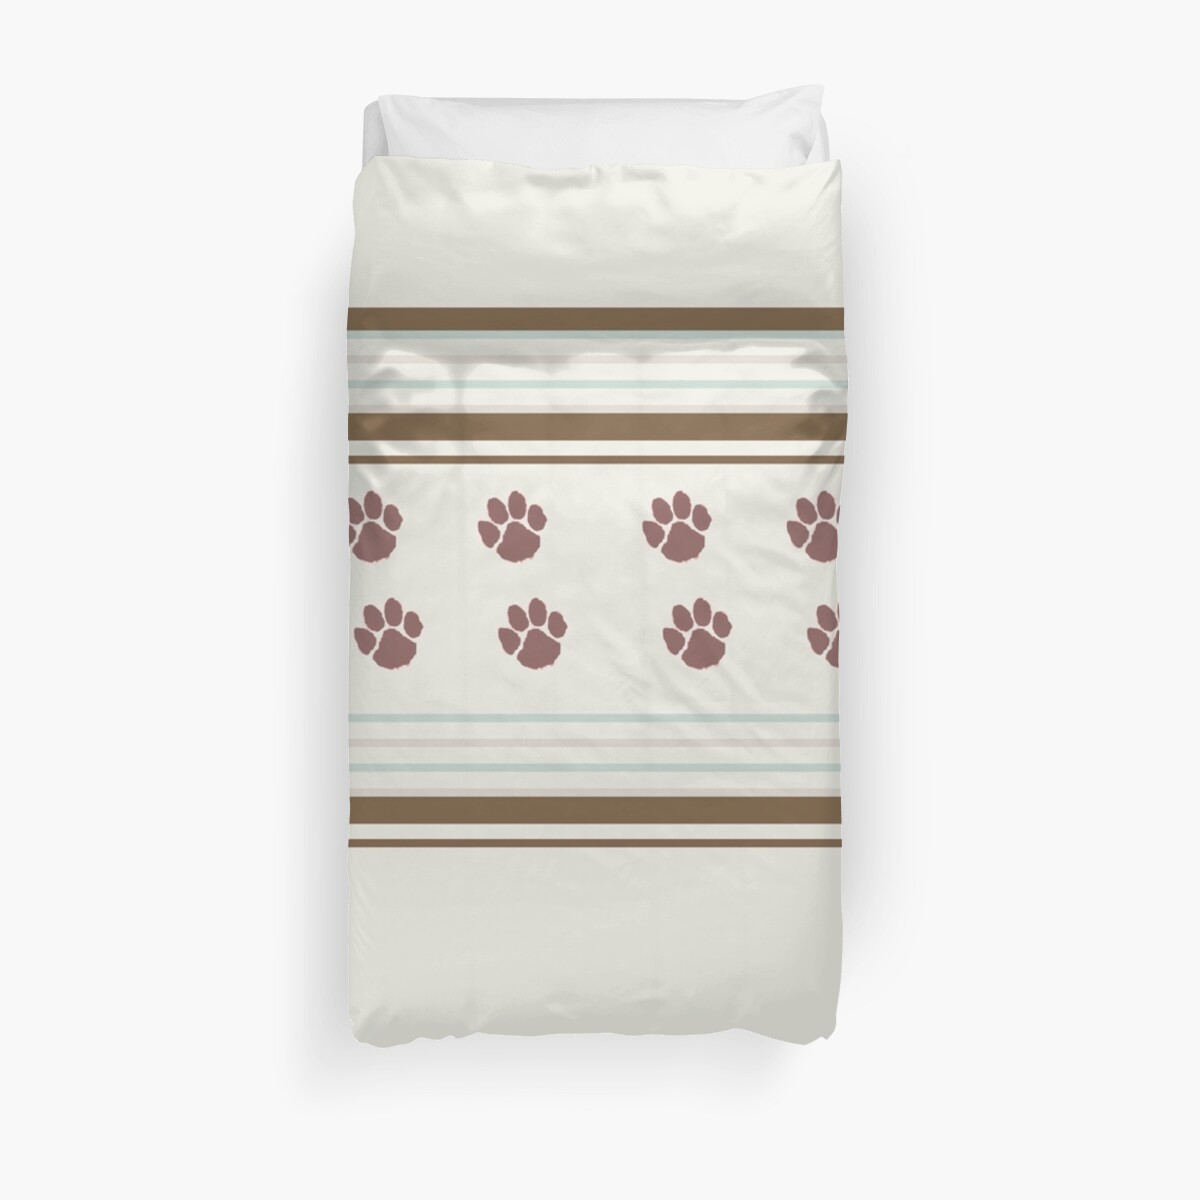 Lodge décor  - The simplicity of Brown stripes and Paw Prints by Maree Clarkson